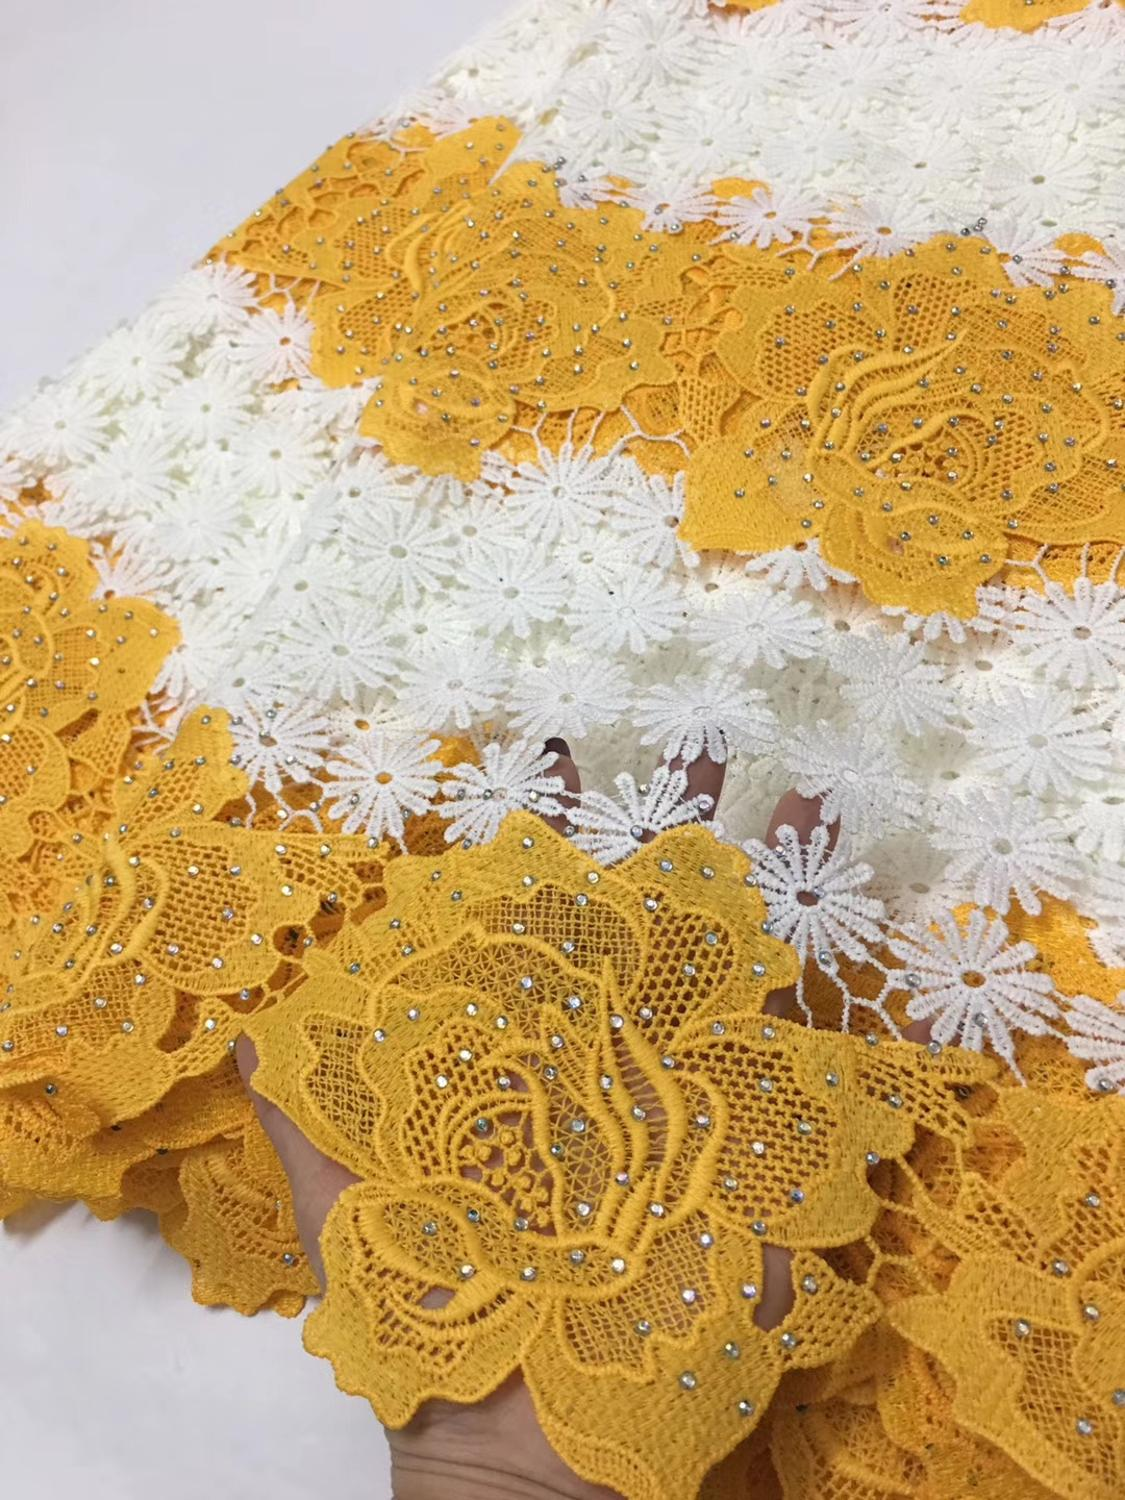 5yards High Quality African Lace Fabrics African Mesh Cord Lace Factory Price Guipure Lace Fabrics For Wedding    ELLAJUN0315yards High Quality African Lace Fabrics African Mesh Cord Lace Factory Price Guipure Lace Fabrics For Wedding    ELLAJUN031